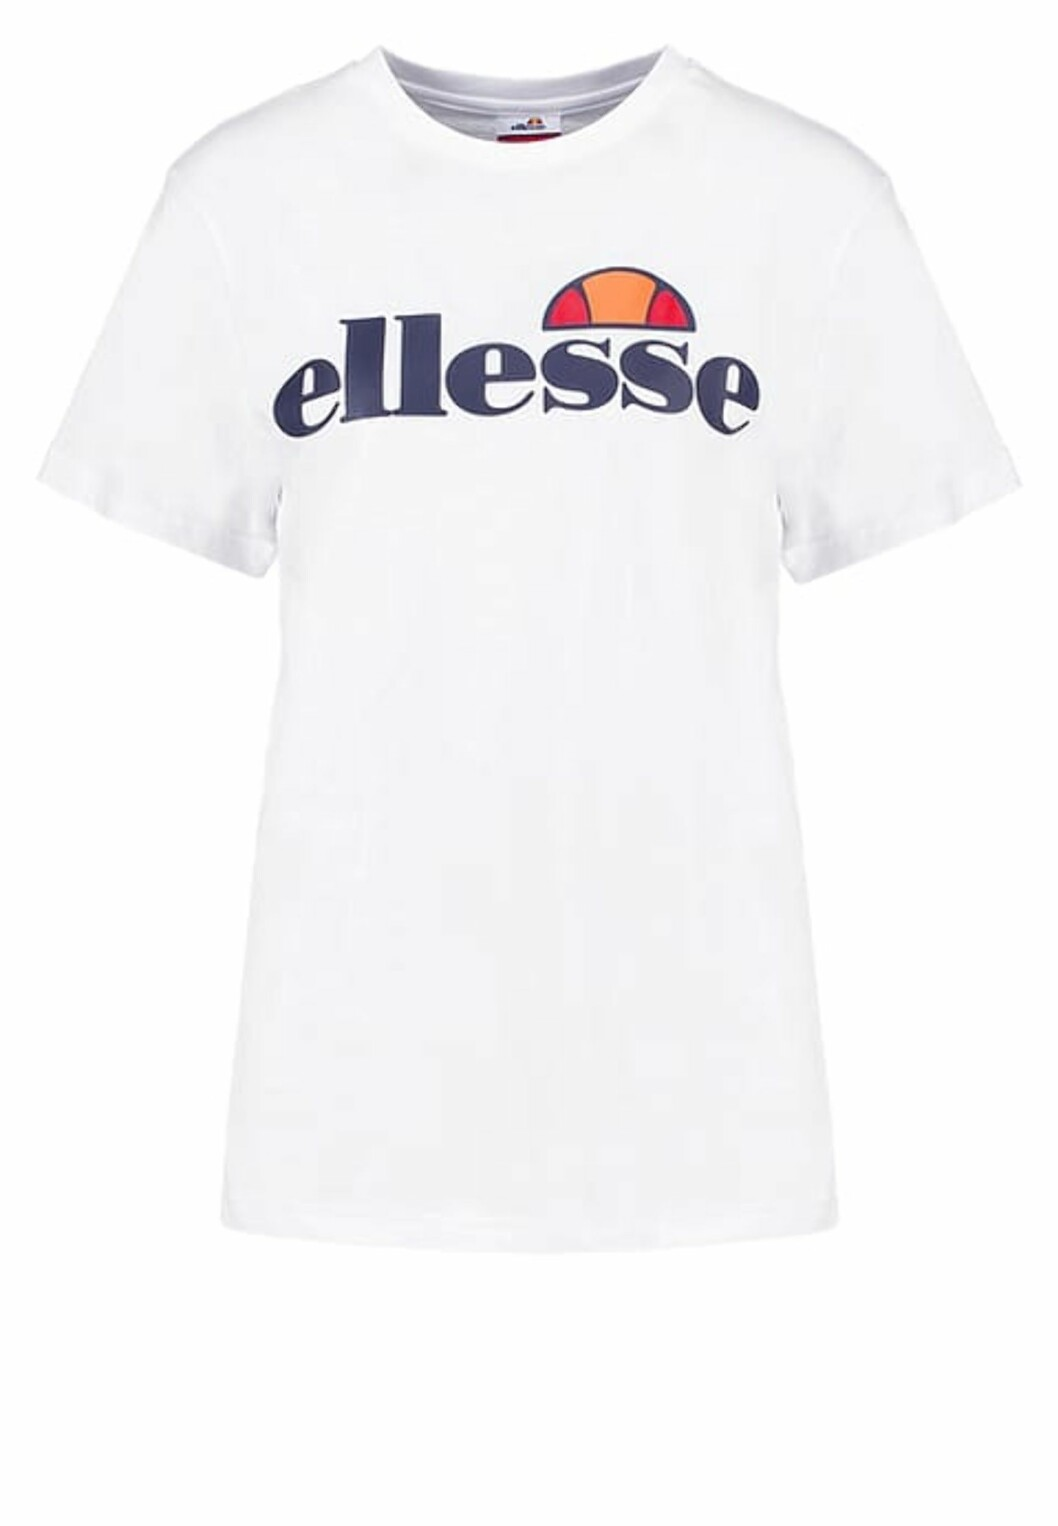 T-skjorte fra Ellesse via Zalando.no | kr 229 | http://marketing.net.zalando.no/ts/i4062628/tsc?amc=performance.znd.47259.54735.57747&rmd=3&trg=https%3A%2F%2Fwww.zalando.no%2Fellesse-t-shirts-med-print-optic-white-el921d00t-a11.html%3Fwmc%3DAFF47_IG_NO.%23%7BPARTNER_ID%7D_%23%7BADSPACE_ID%7D..